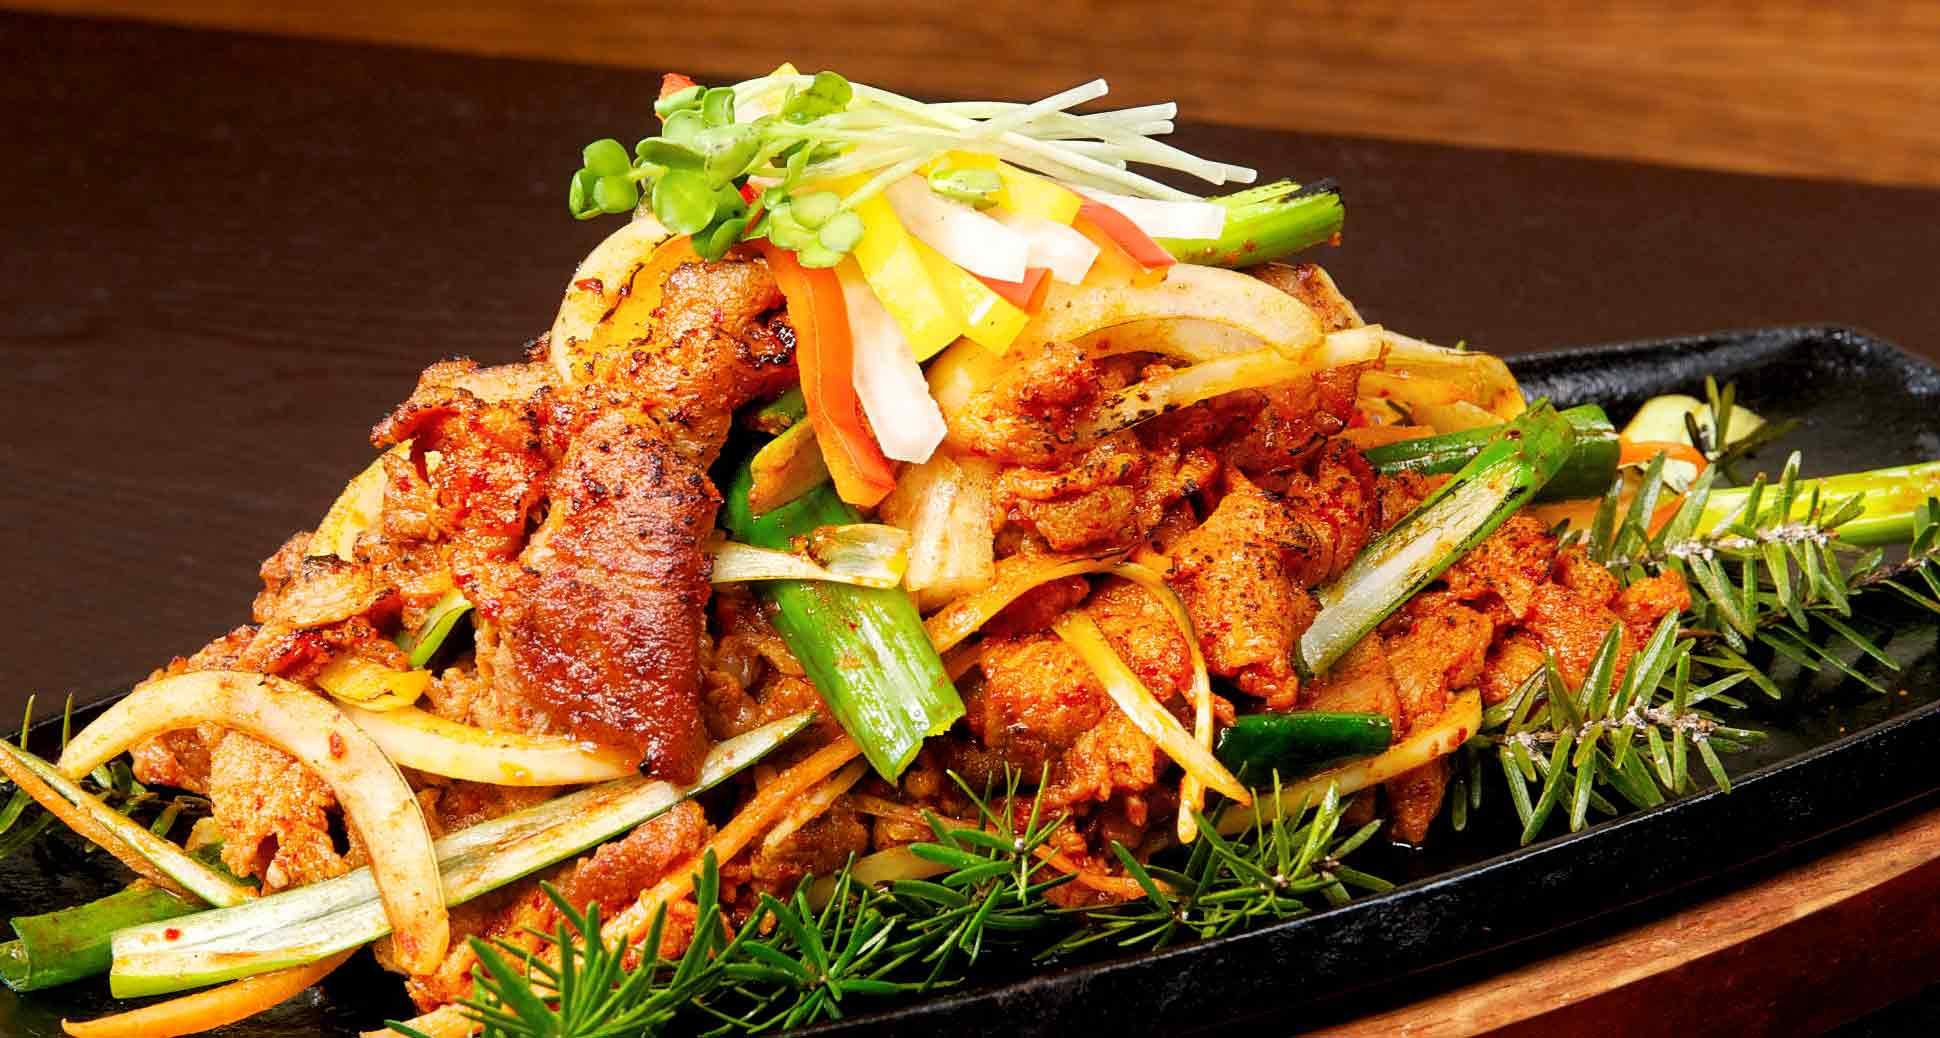 Spicy Sliced Pork: Another Highly Popular Korean BBQ dish